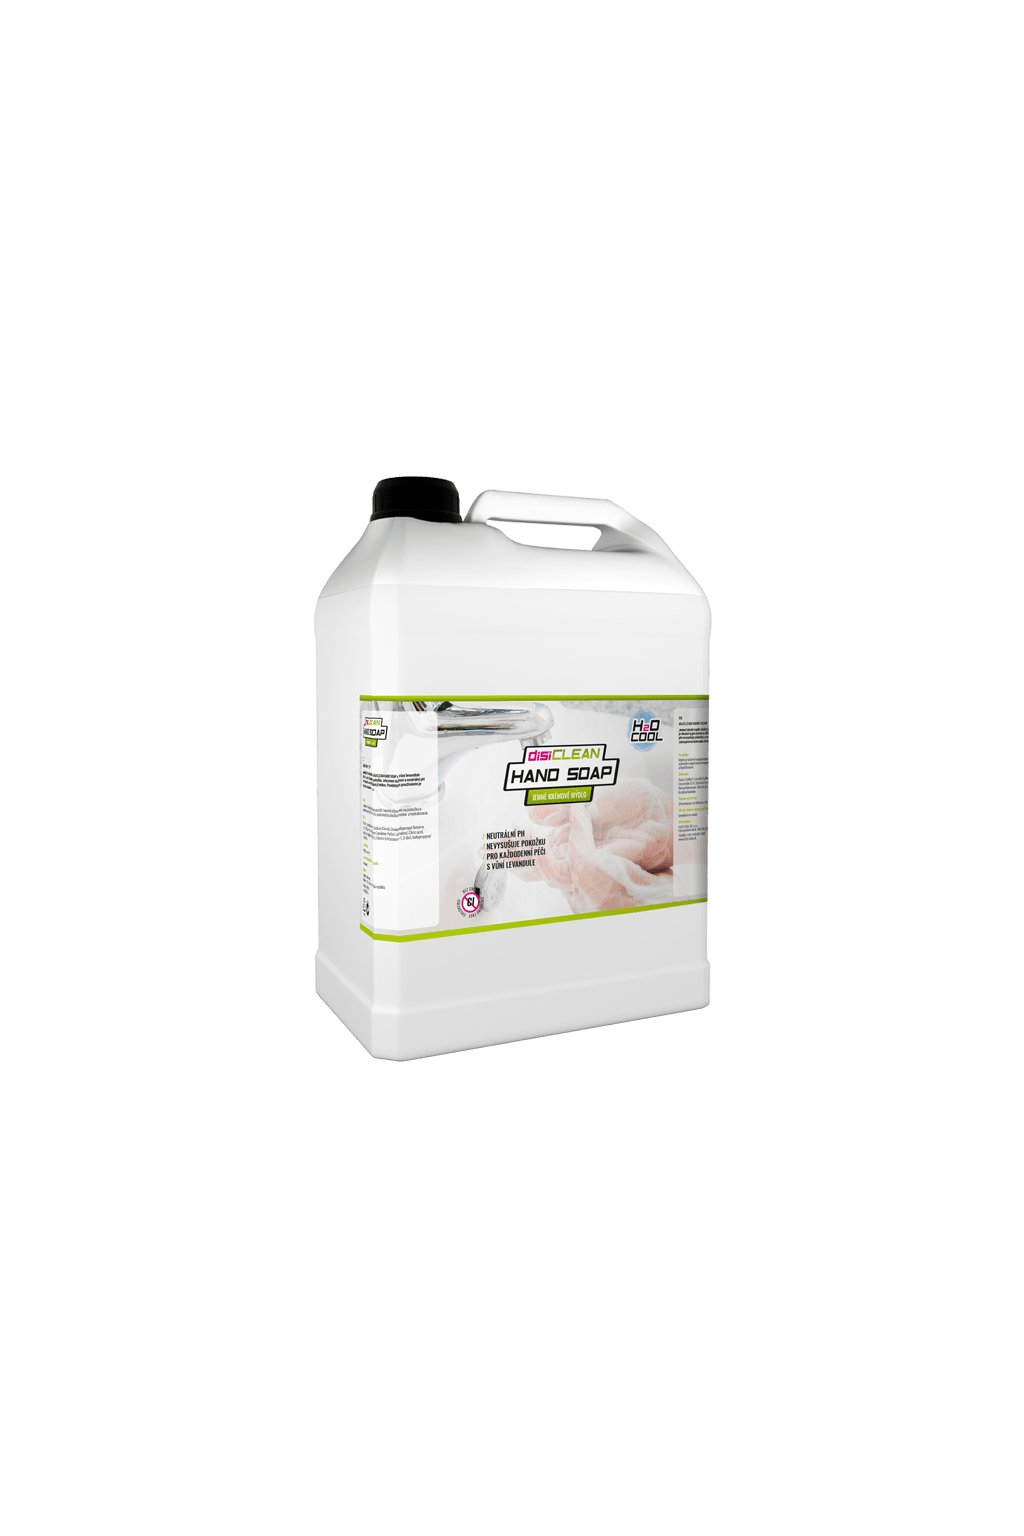 disiclean hand soap 5l